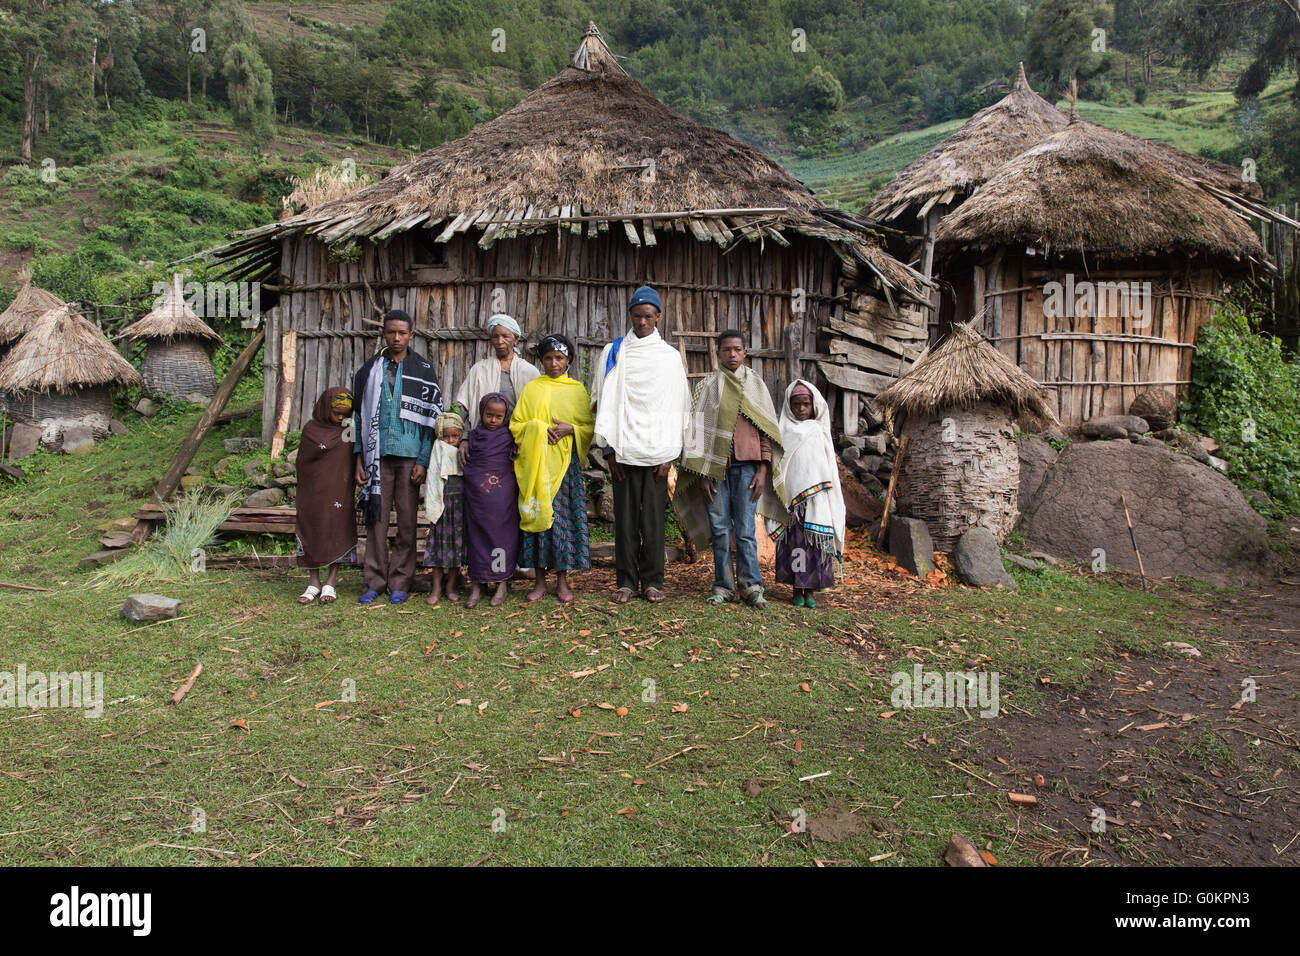 Wofwasha,  Ethiopia, 2013:   Hailemariam Woldoyohanus, 37, and his wife Zenobich  and the extended family group. - Stock Image